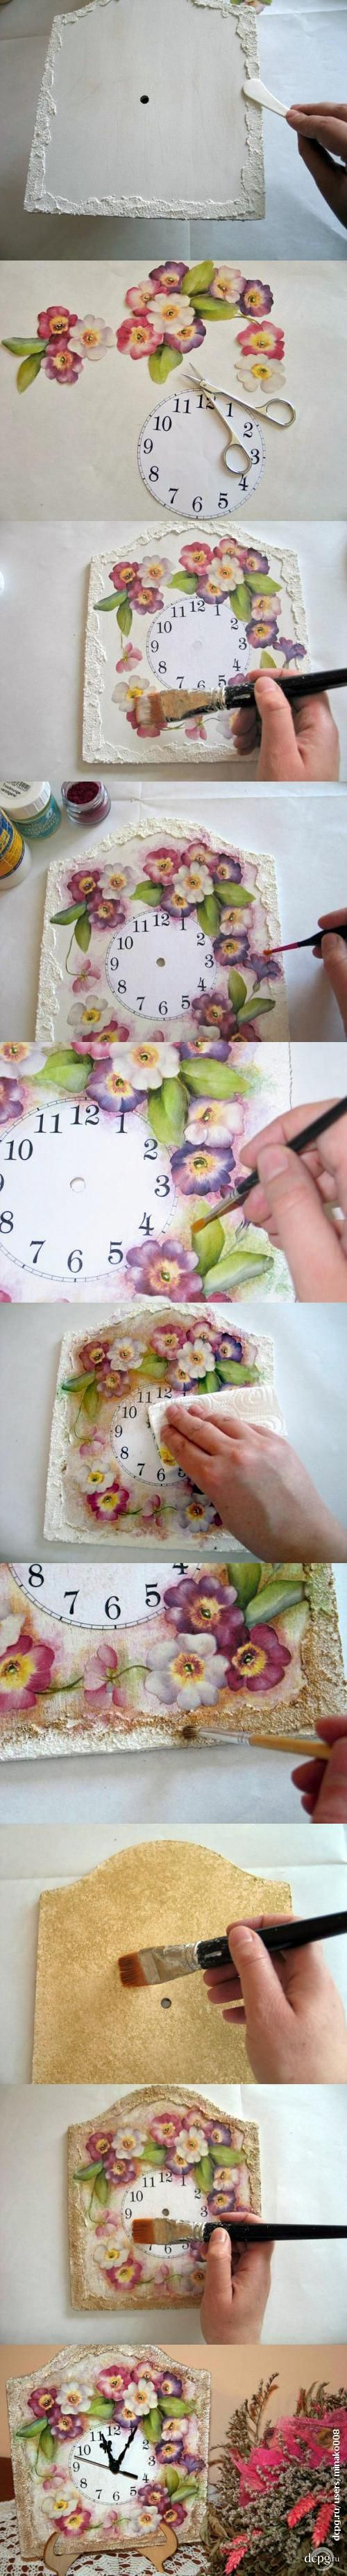 http://dcpg.ru/mclasses/1114/ || ♡ BEAUTIFUL!!! ♥A***I would love to try taking this one step further, and adding some dimension with Paper Tole! A